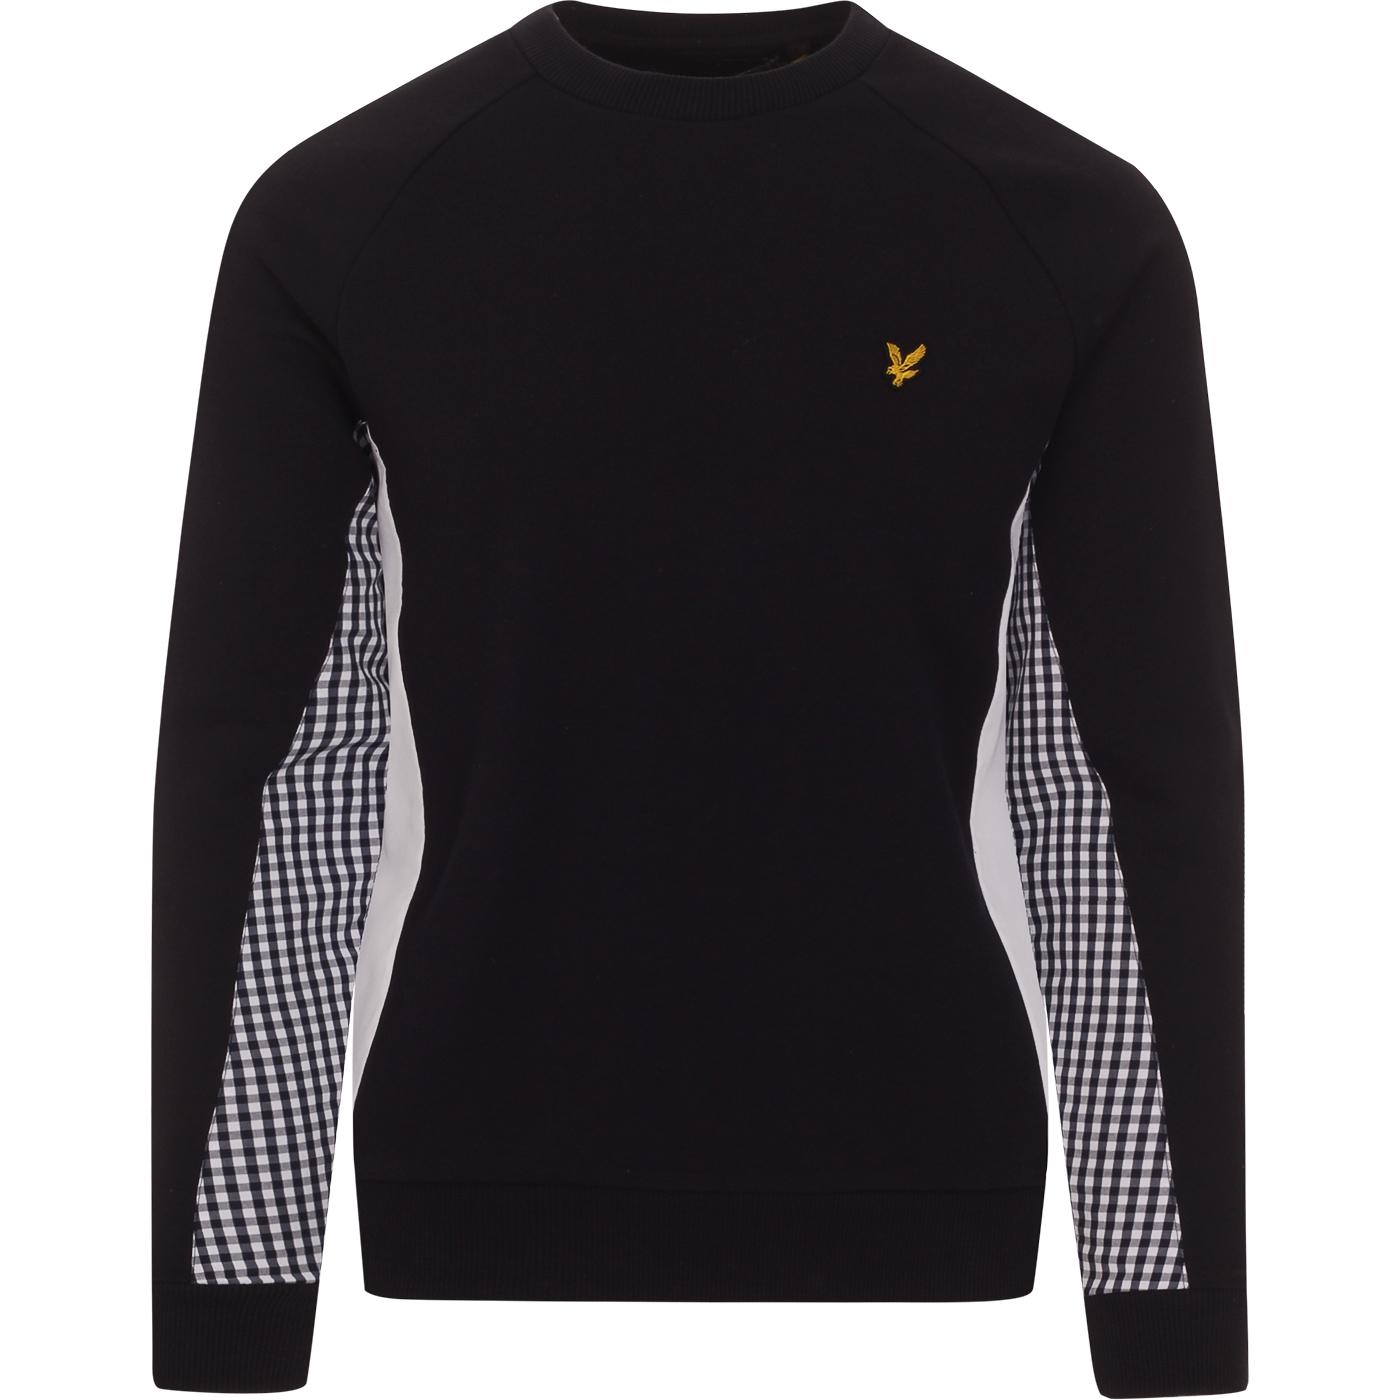 LYLE & SCOTT Retro Gingham Cut & Sew Sweatshirt